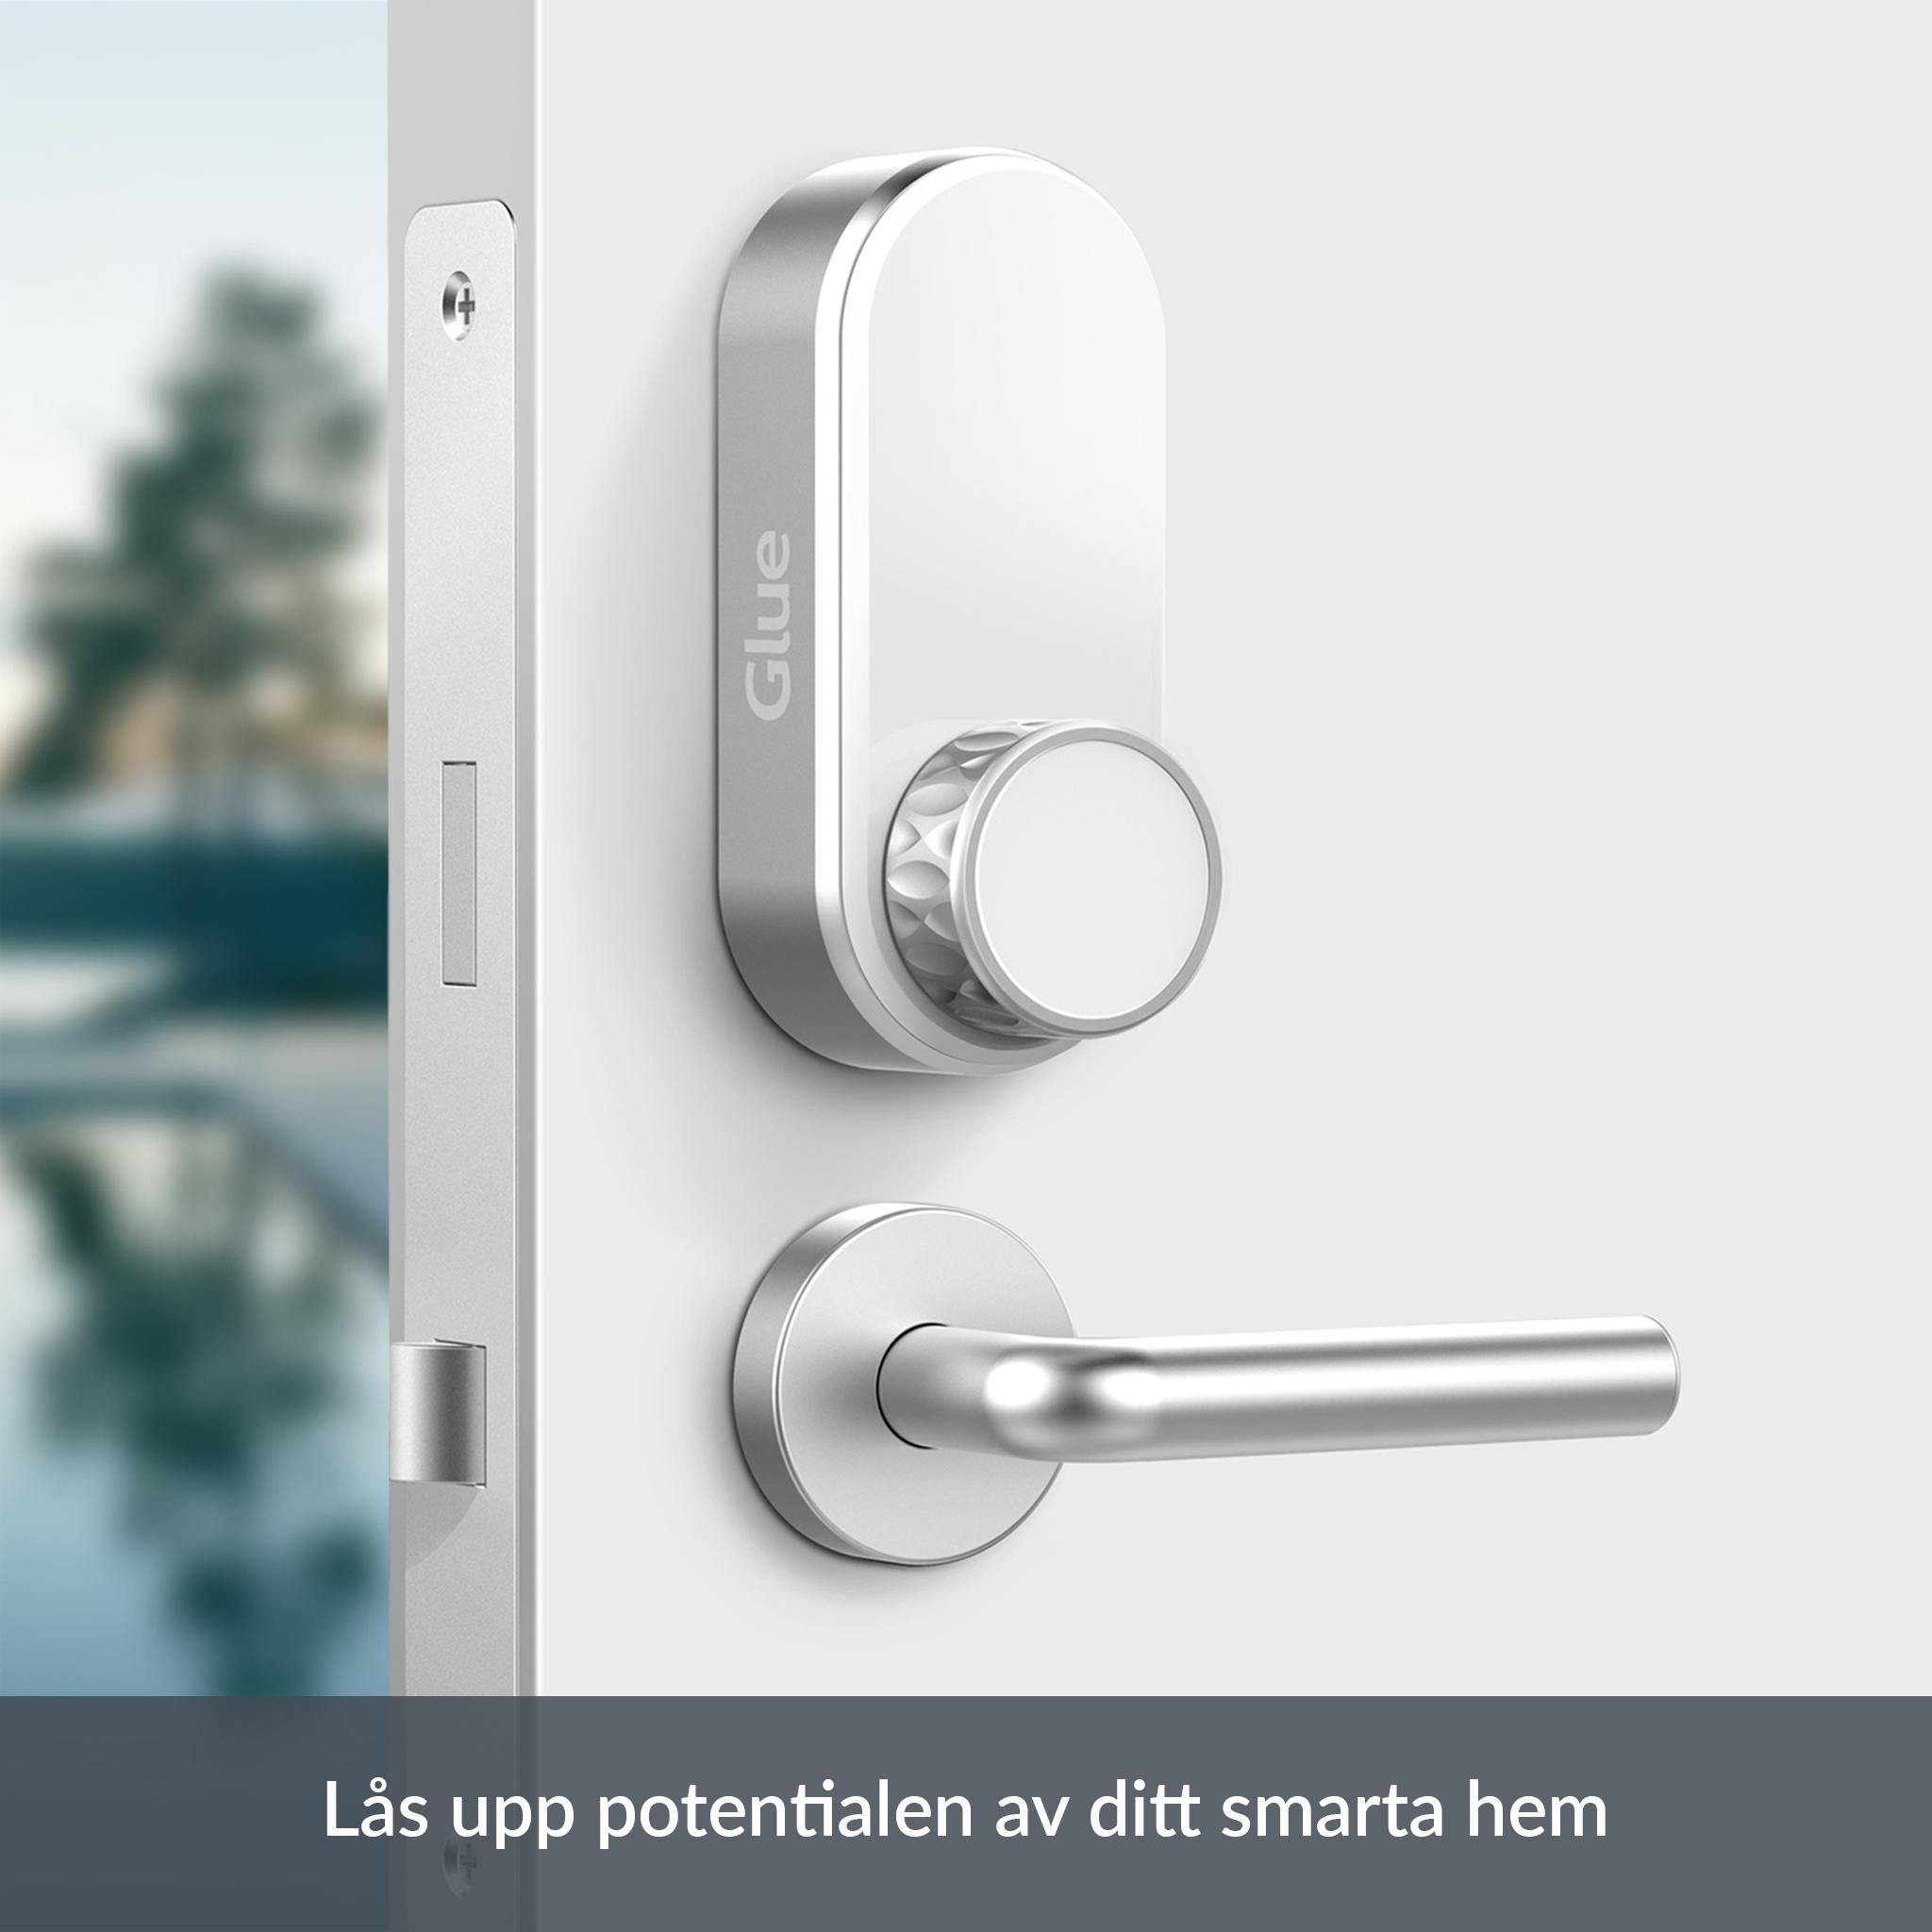 Glue is mounted on the inside of your door, allowing you to lock and unlock with your mobile phone wherever you are. Share permanent or temporary digital keys with family, friends, guests, and service companies. You never need to be home again to receive a delivery, Airbnb guest or handiman. Facts about Glue Lock: - Glue Lock is easily mounted over your existing lock - it does not affect the lock and your regular keys still work if needed. - Control your door lock via Bluetooth and Wi-Fi with the Glue app - Share digital keys to other people in the app and customize when they will be able to unlock - Get notifications when the lock is used and see who's accessed the lock - State of the art encryption and unique encrypted digital keys - The Bluetooth signal has a range of approximately 15 meters - Glue Lock is approved by If Skadeförsäkring AB and Länsförsäkringar Stockholm - Powered by 4 AA batteries (supplied) so the lock is not affected by power outages. The batteries last for up to a year and are easy to replace, the app indicates when it's time to replace them Facts about Glue WiFi Hub: - Control your lock over the internet wherever you are - No wires - connect directly to the power outlet - Dimensions: 53 x 82 x 74 mm (including plug)